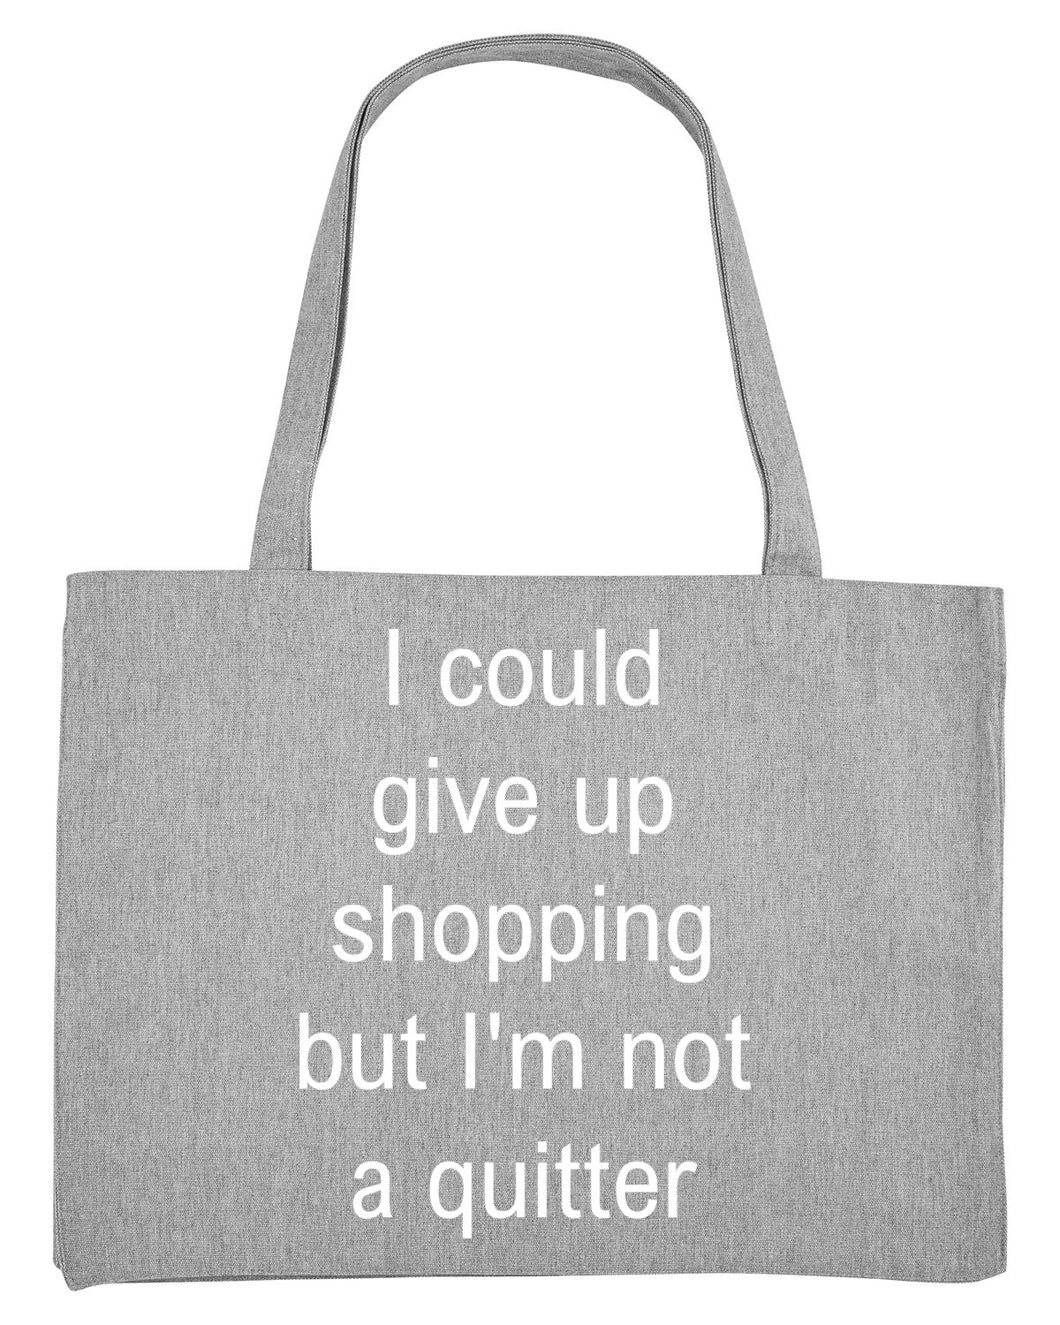 Shopping bag - I could give up shopping but I'm not a quitter